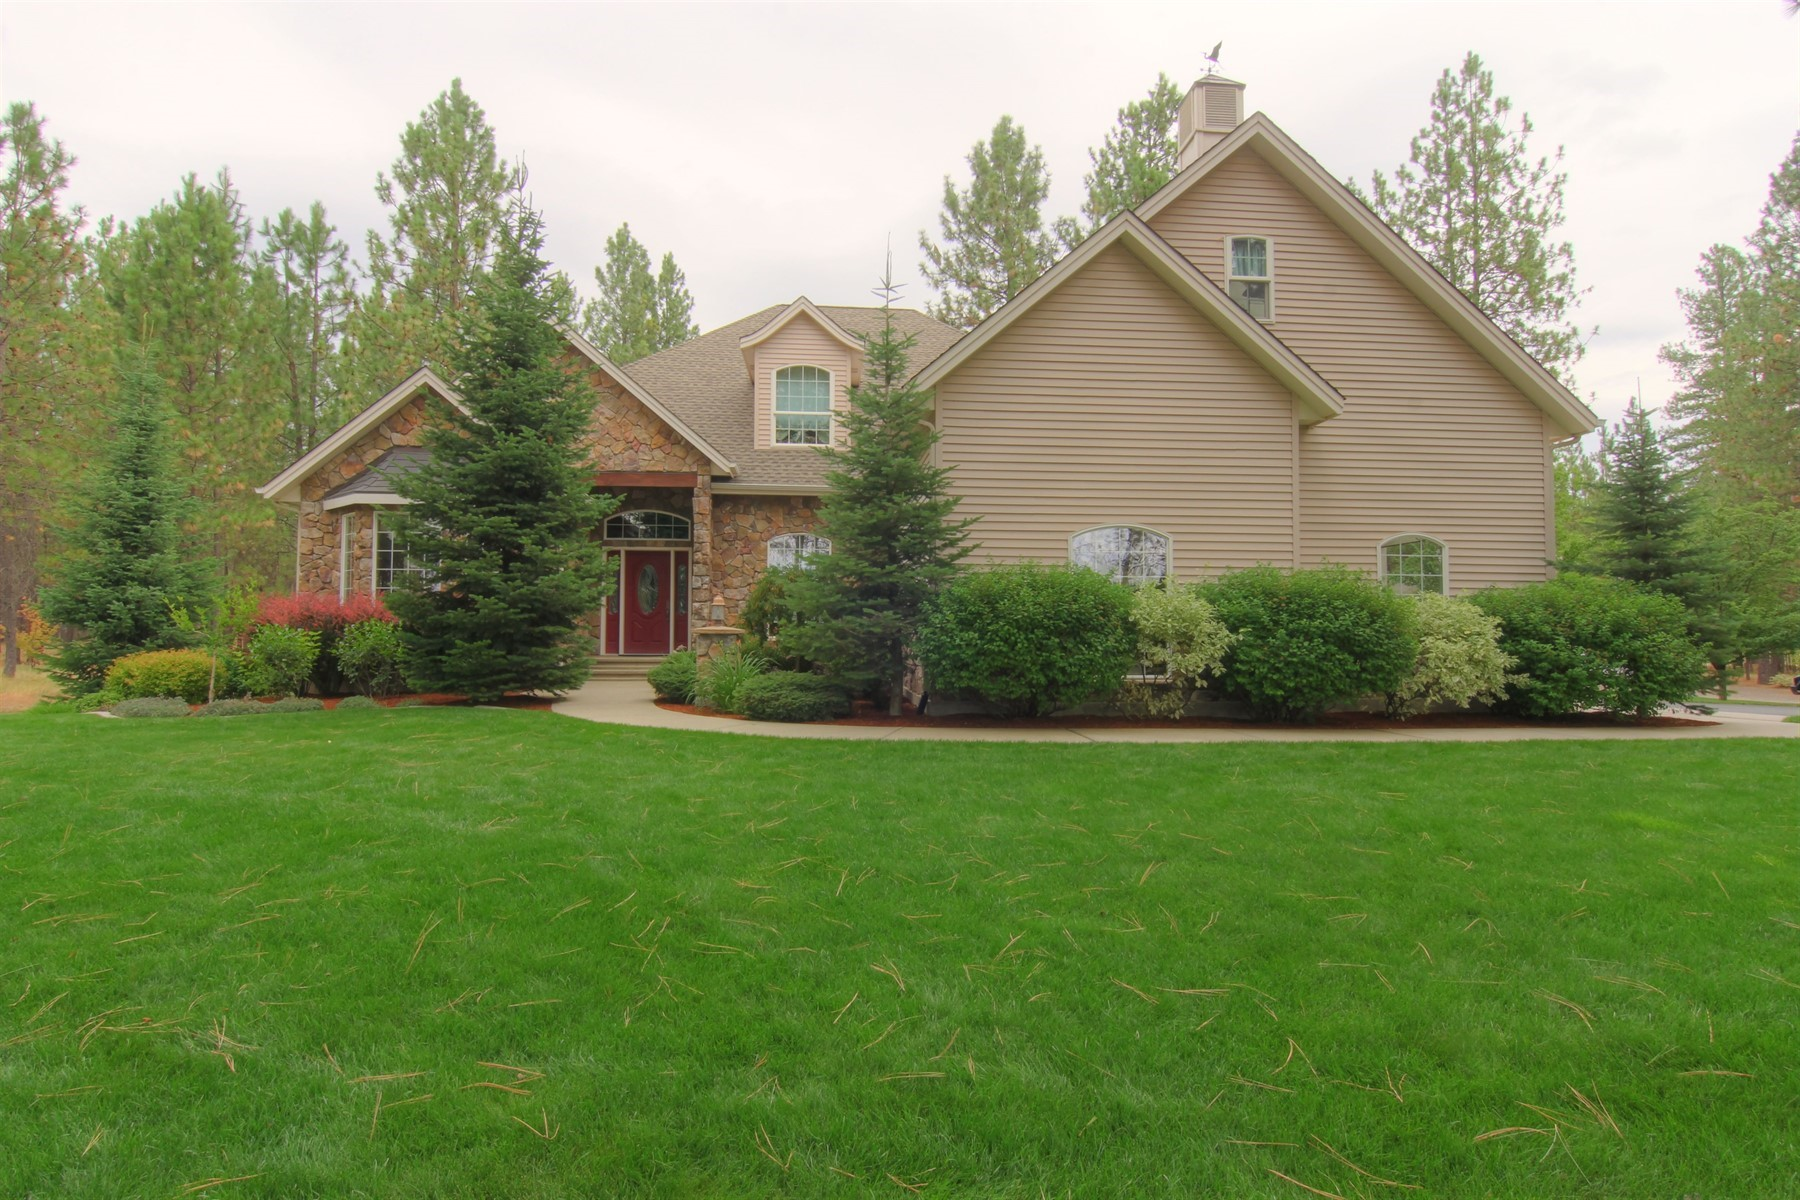 Single Family Homes for Sale at Private, Peaceful, Perfect 5023 E Kirk Ln Colbert, Washington 99005 United States